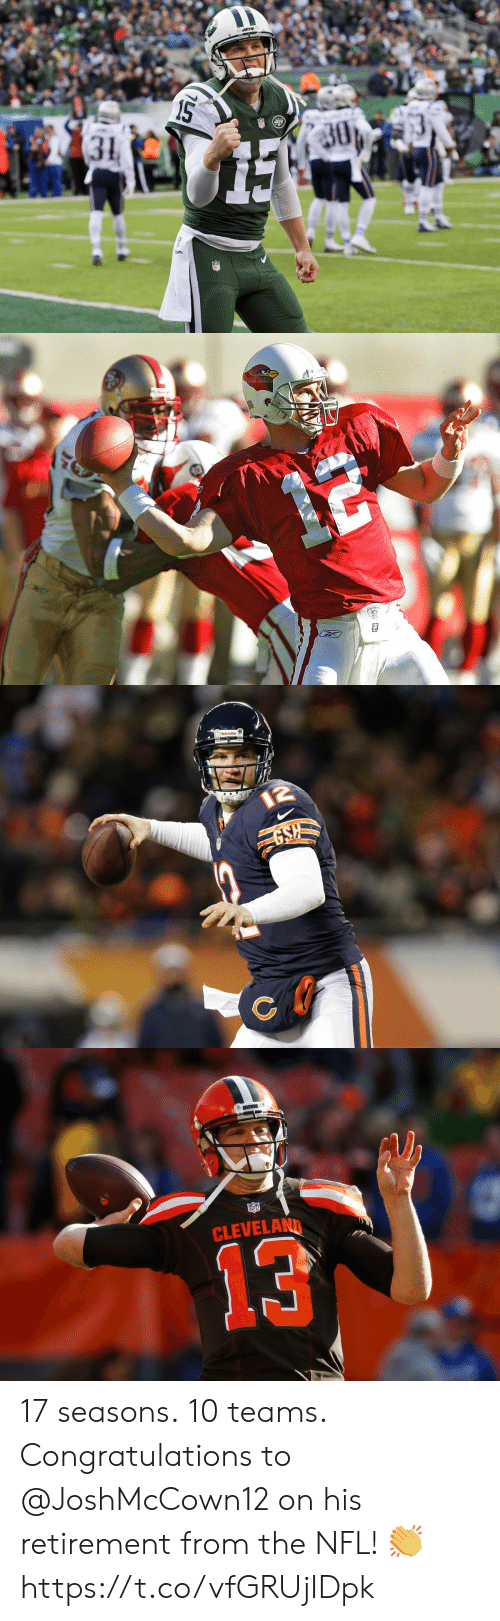 Memes, Nfl, and Cleveland: 15  30  ETS  31   12  GSH   CLEVELAND  13 17 seasons. 10 teams.  Congratulations to @JoshMcCown12 on his retirement from the NFL! 👏 https://t.co/vfGRUjIDpk